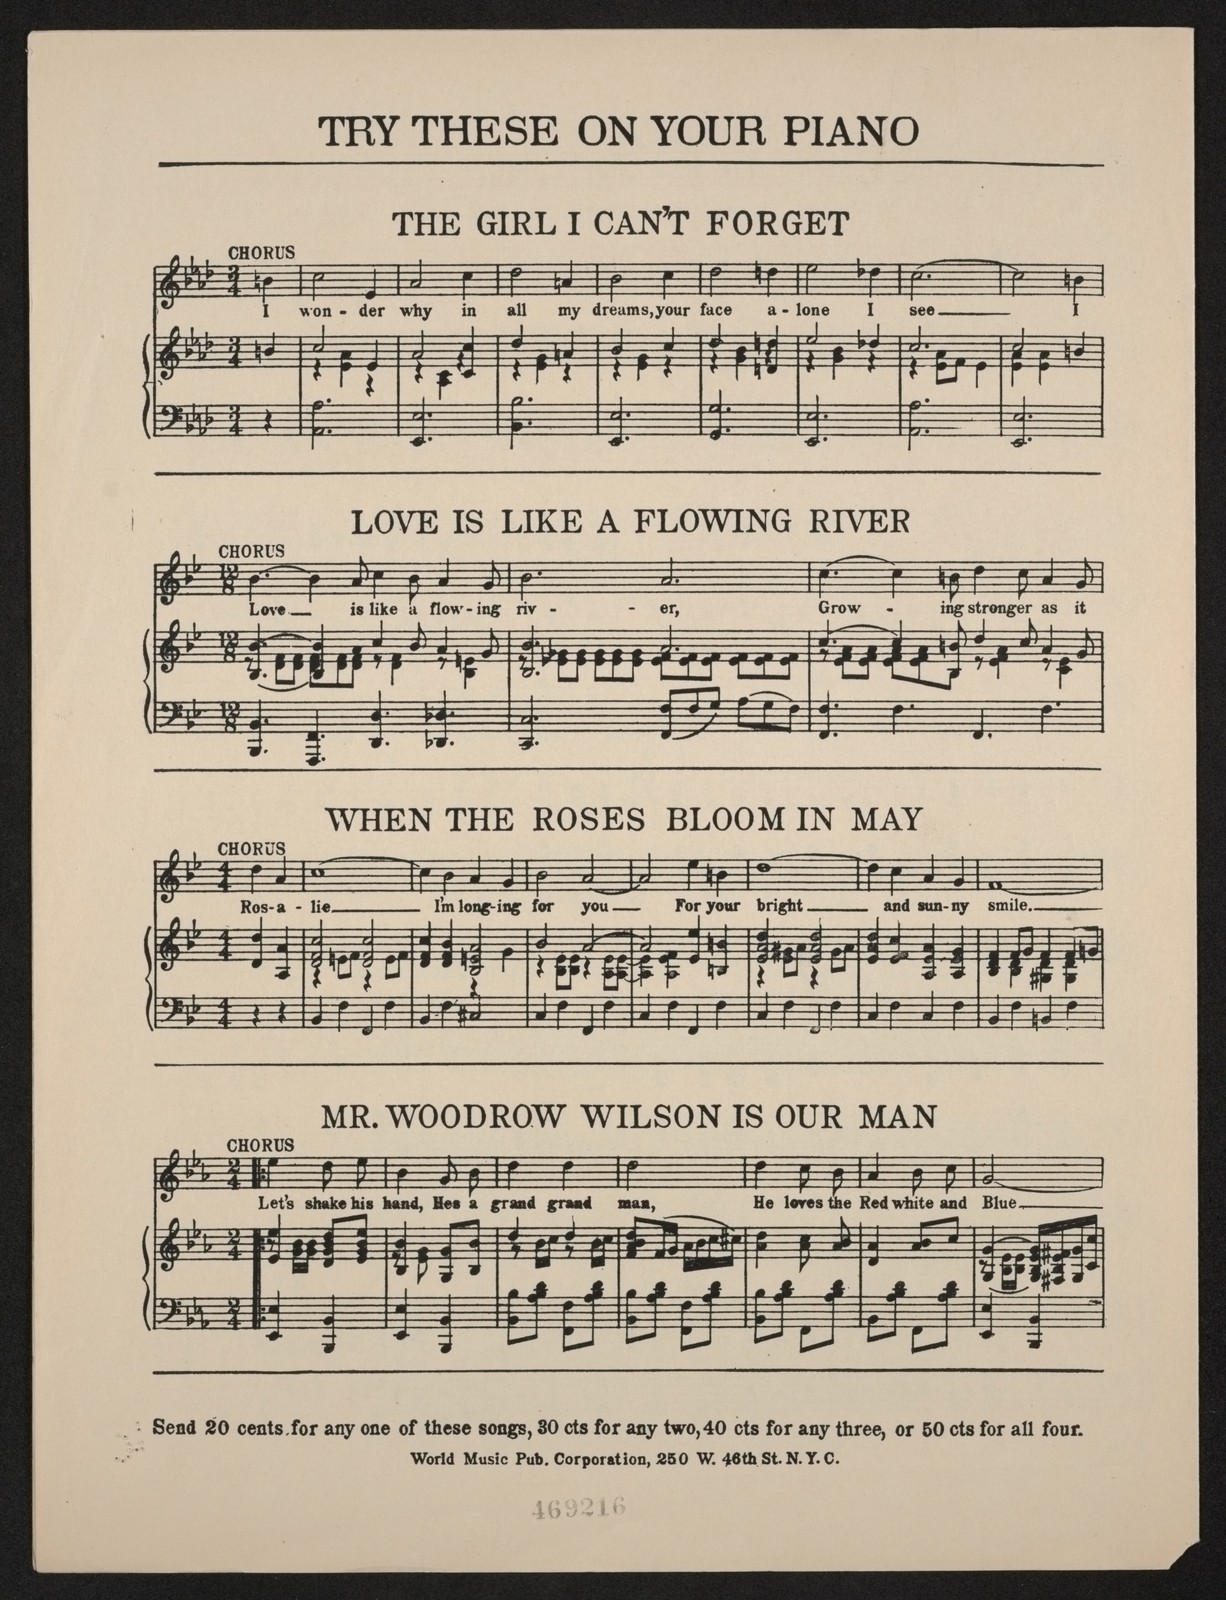 To Wilson song